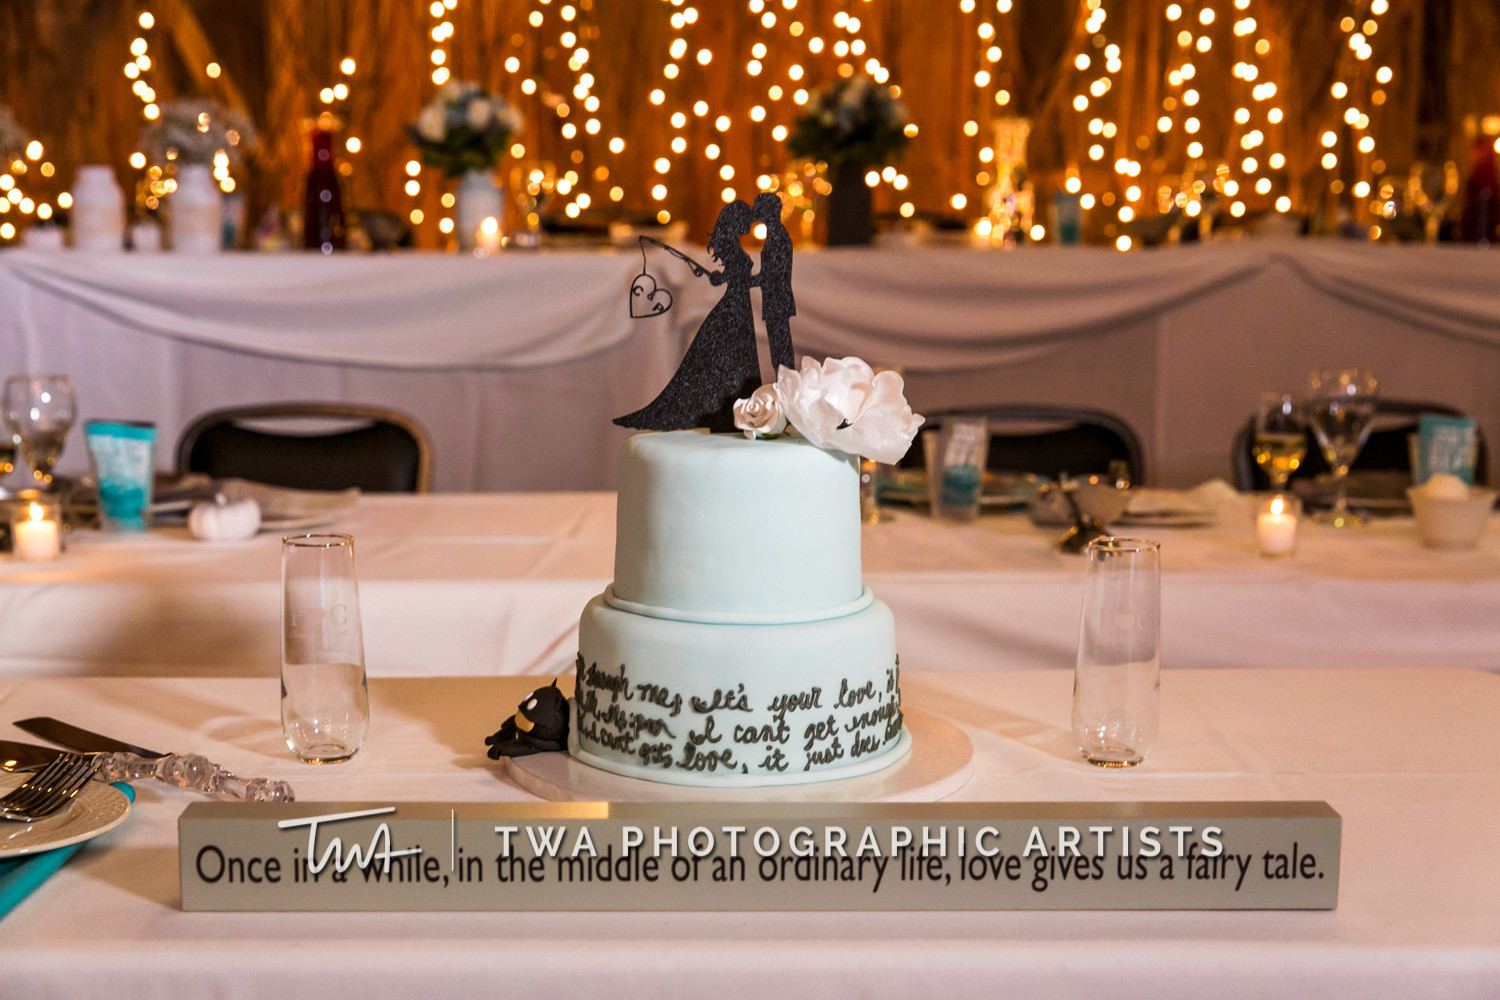 Chicago-Wedding-Photographer-TWA-Photographic-Artists-County-Line-Orchard_Bomba_Purcell_MiC_DR-0999